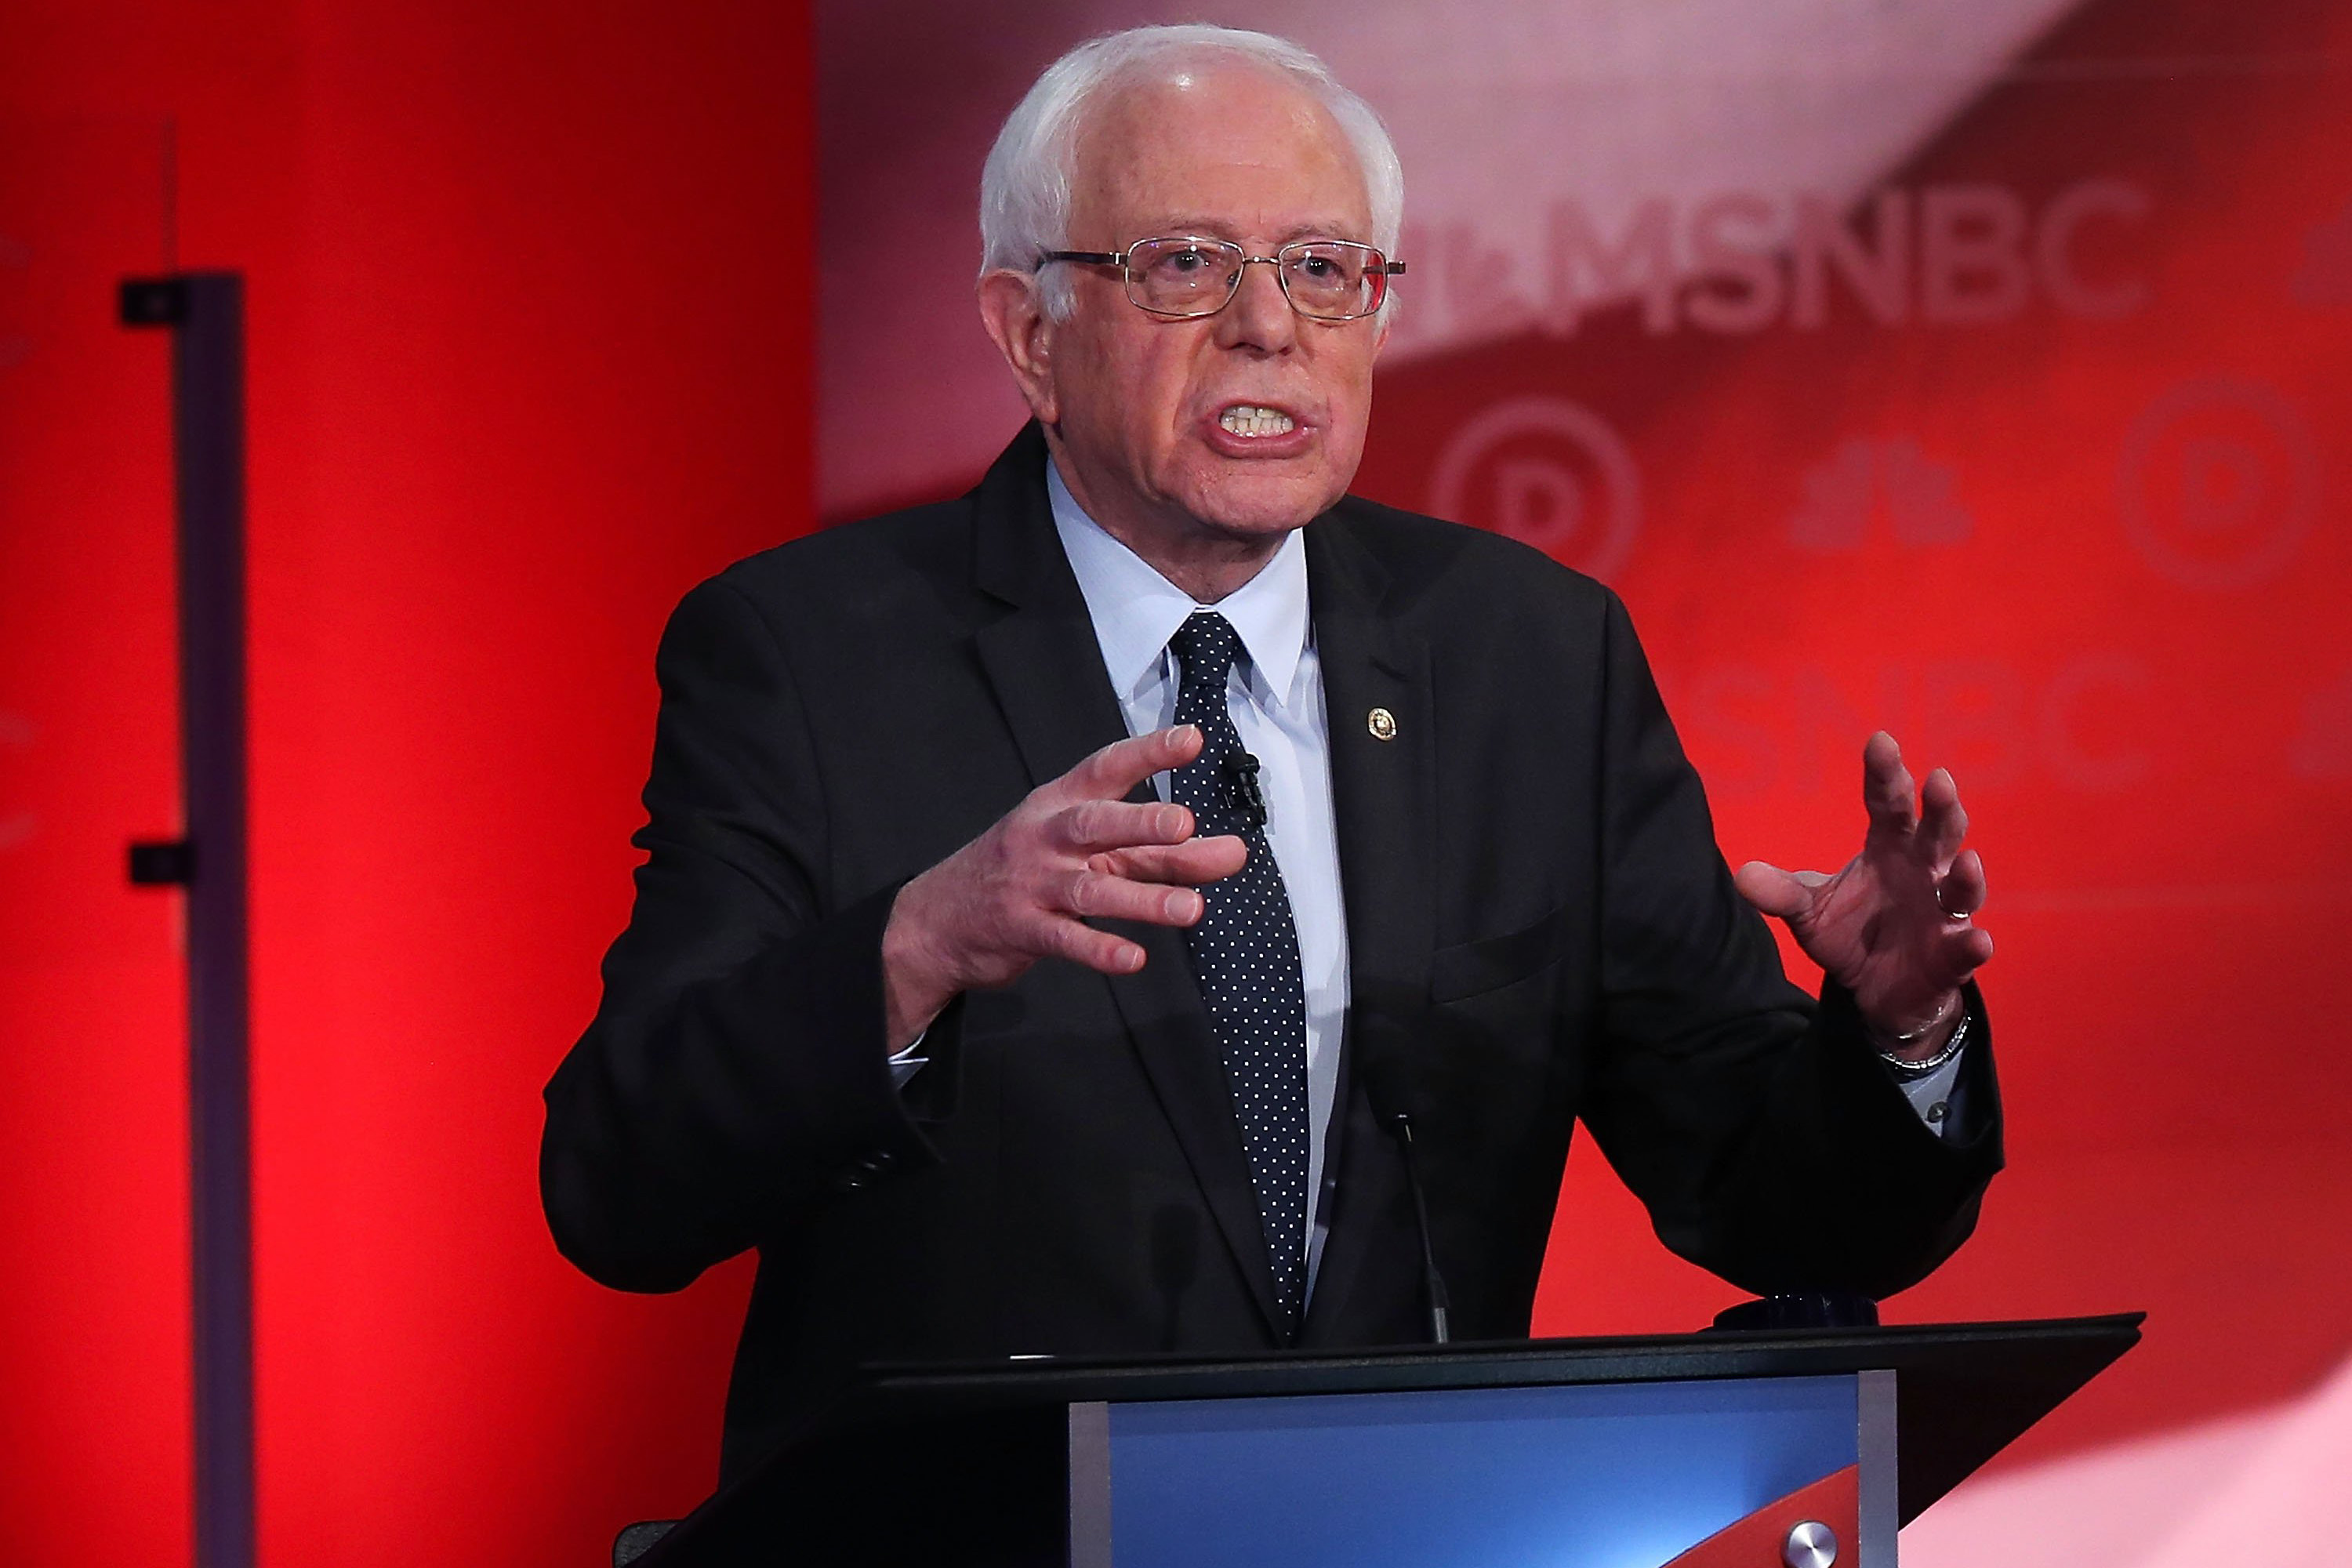 Democratic presidential candidate U.S. Sen. Bernie Sanders (I-VT) speaks during  a Democratic debate with former Secretary of State Hillary Clinton at the University of New Hampshire on Feb. 4, 2016 in Durham, N.H.